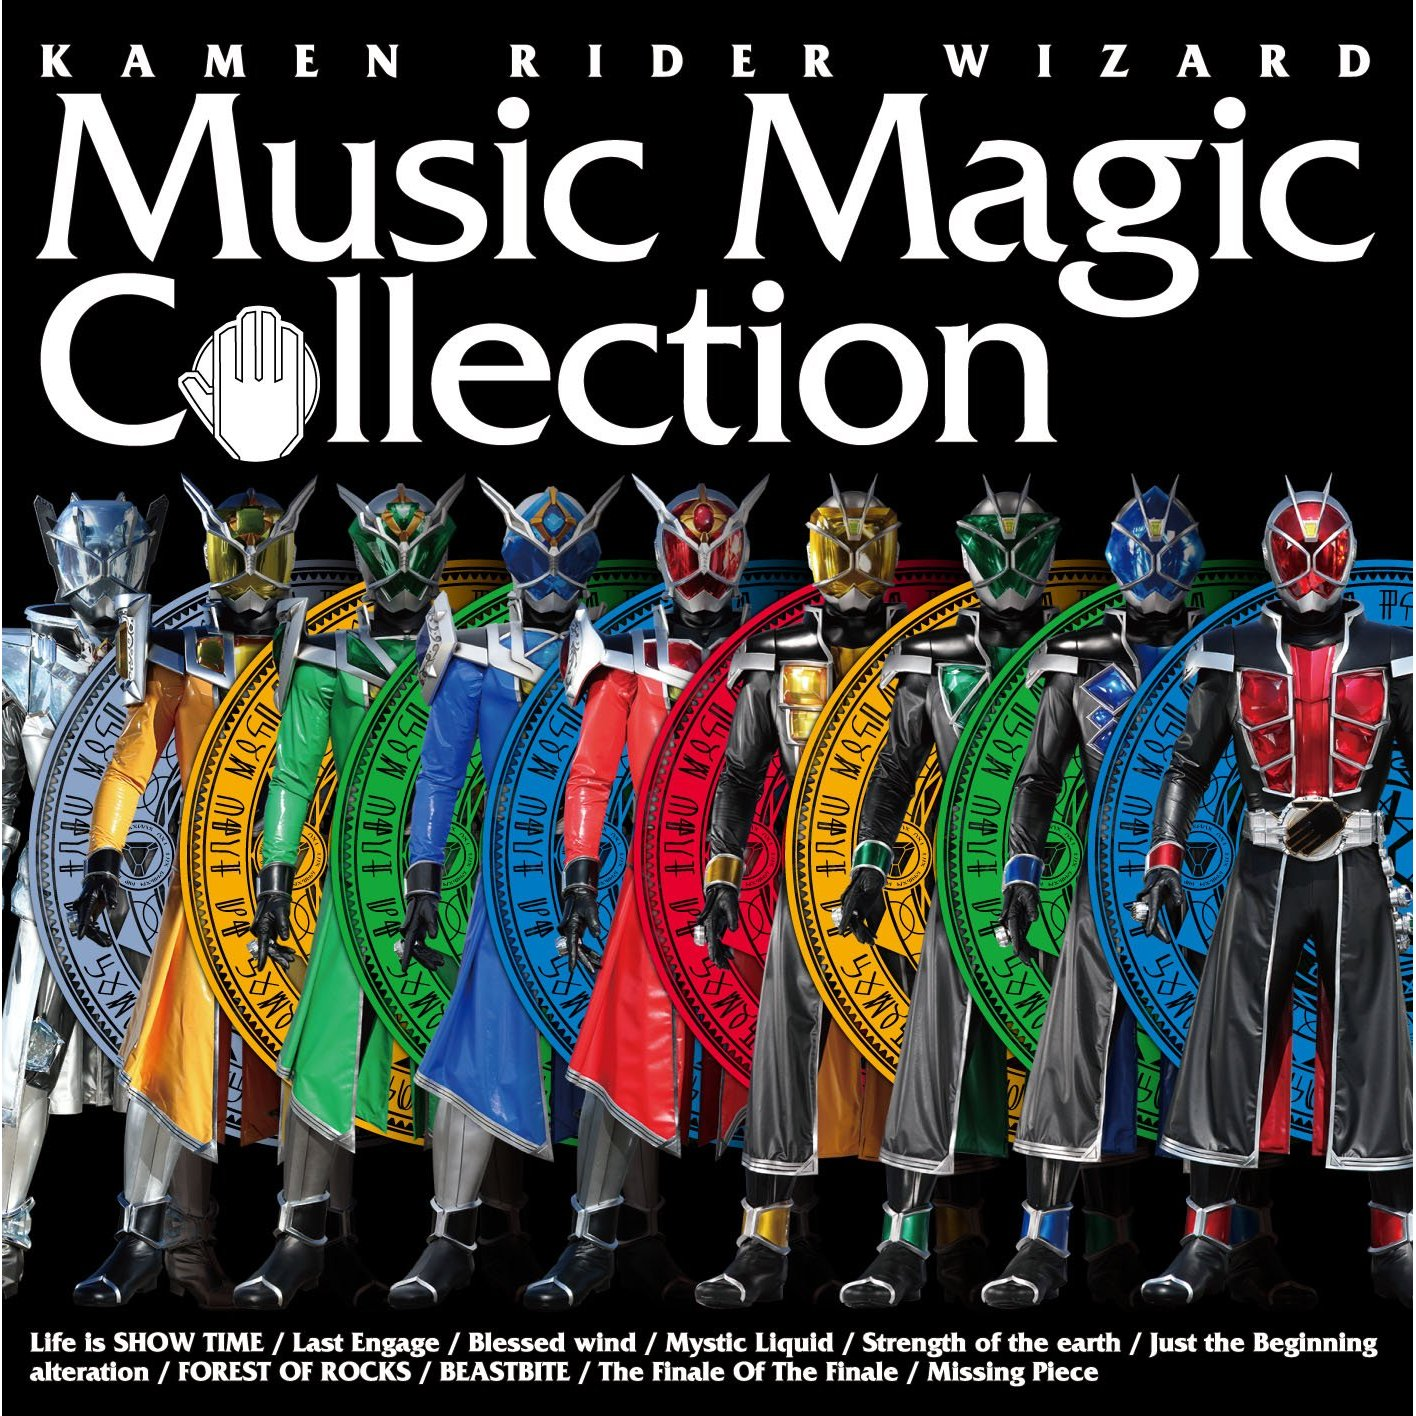 Kamen Rider Wizard Music Magic Collection